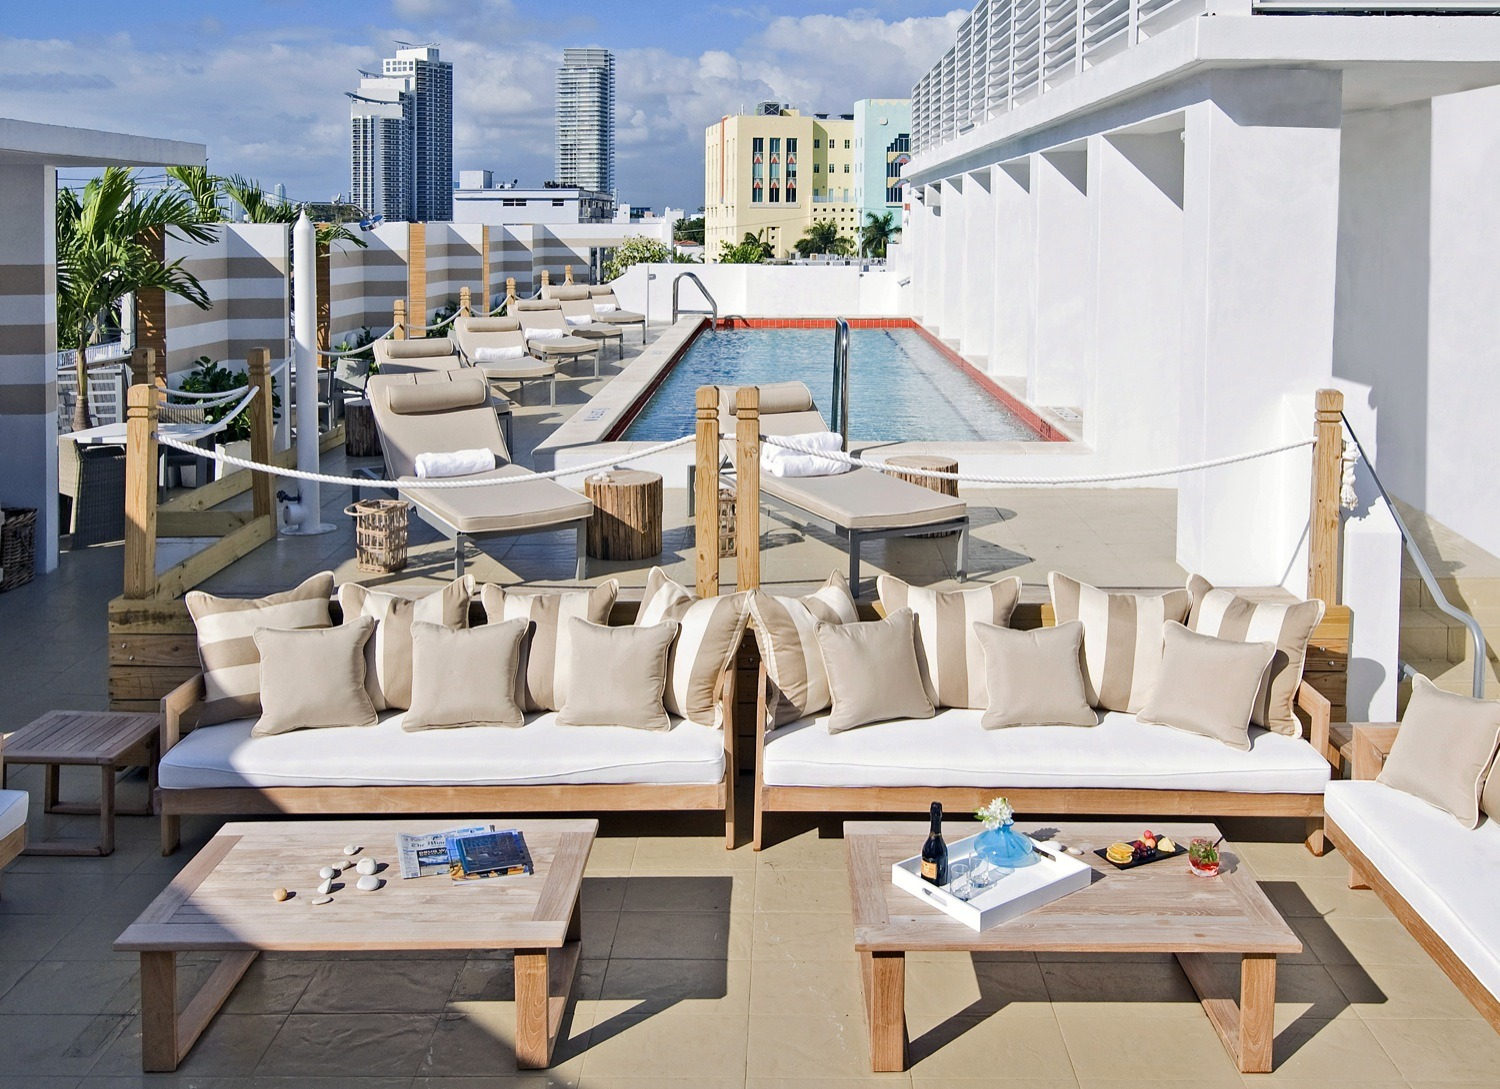 12 best rooftop bars in miami for happy hour or late night for Best houses in miami